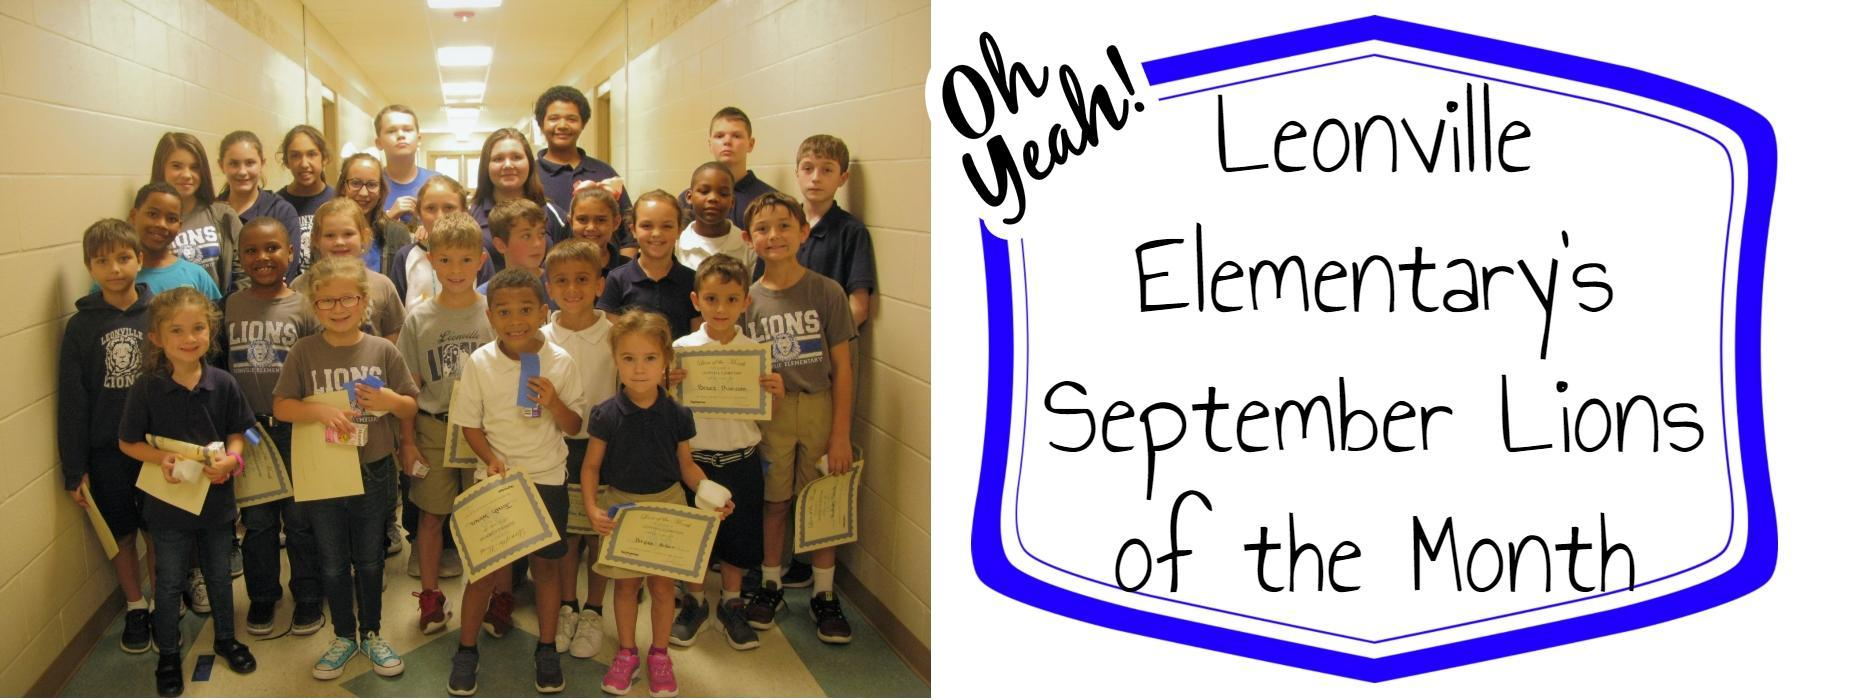 Leonville Elementary's September Lions of the Month